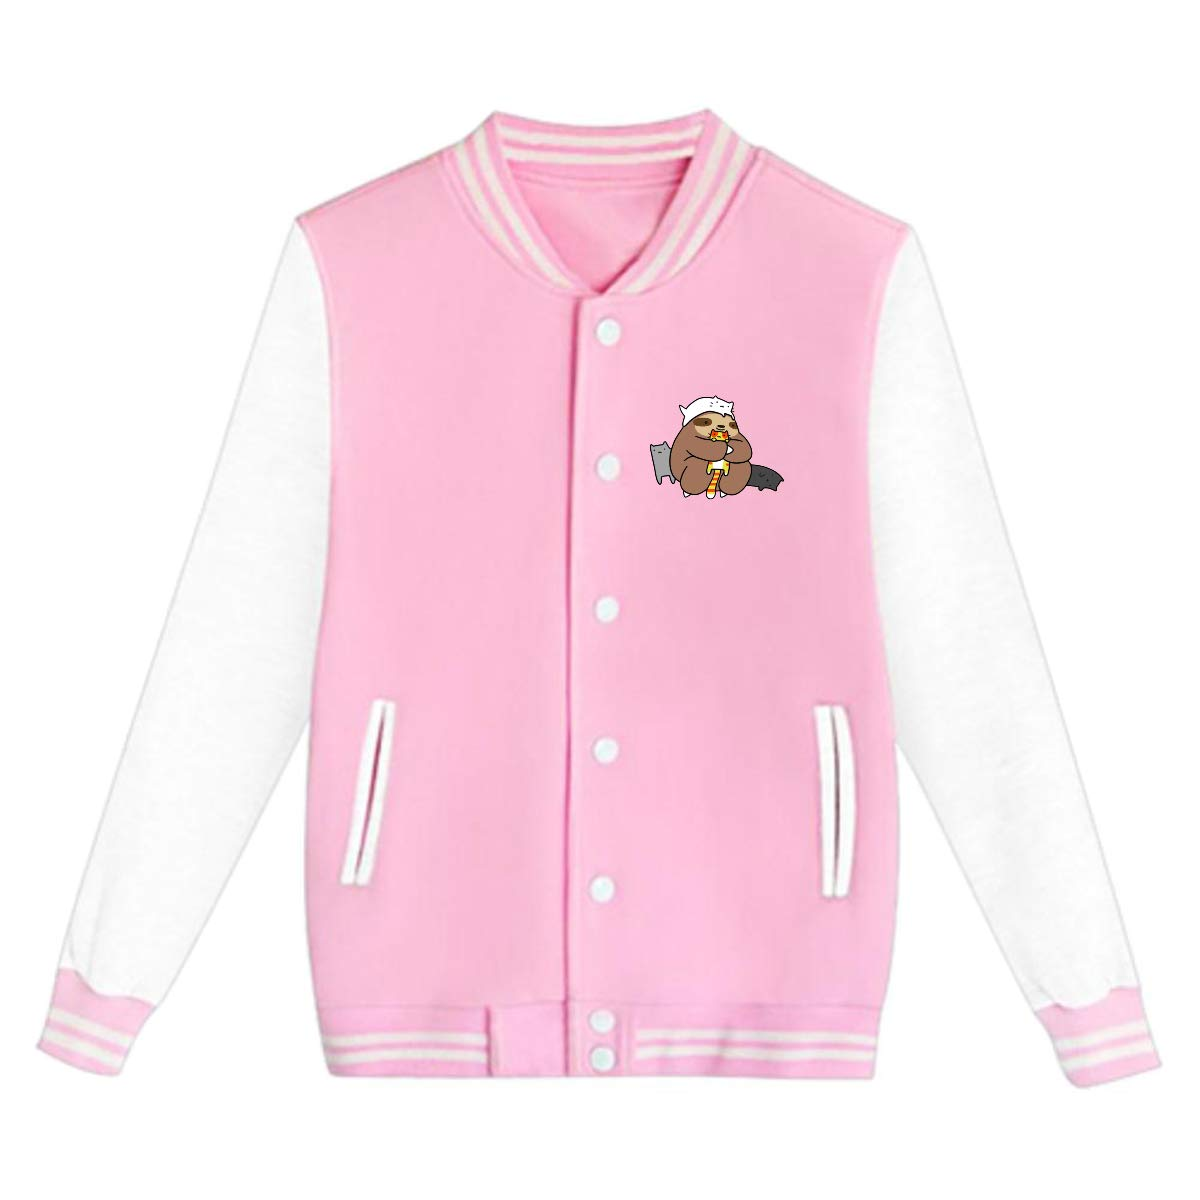 Tina TN Sloth Loves Cats Teens Boys Girl Varsity Baseball Jacket Long Sleeve Sport Baseball Uniform Jacket Coat Sweater Black